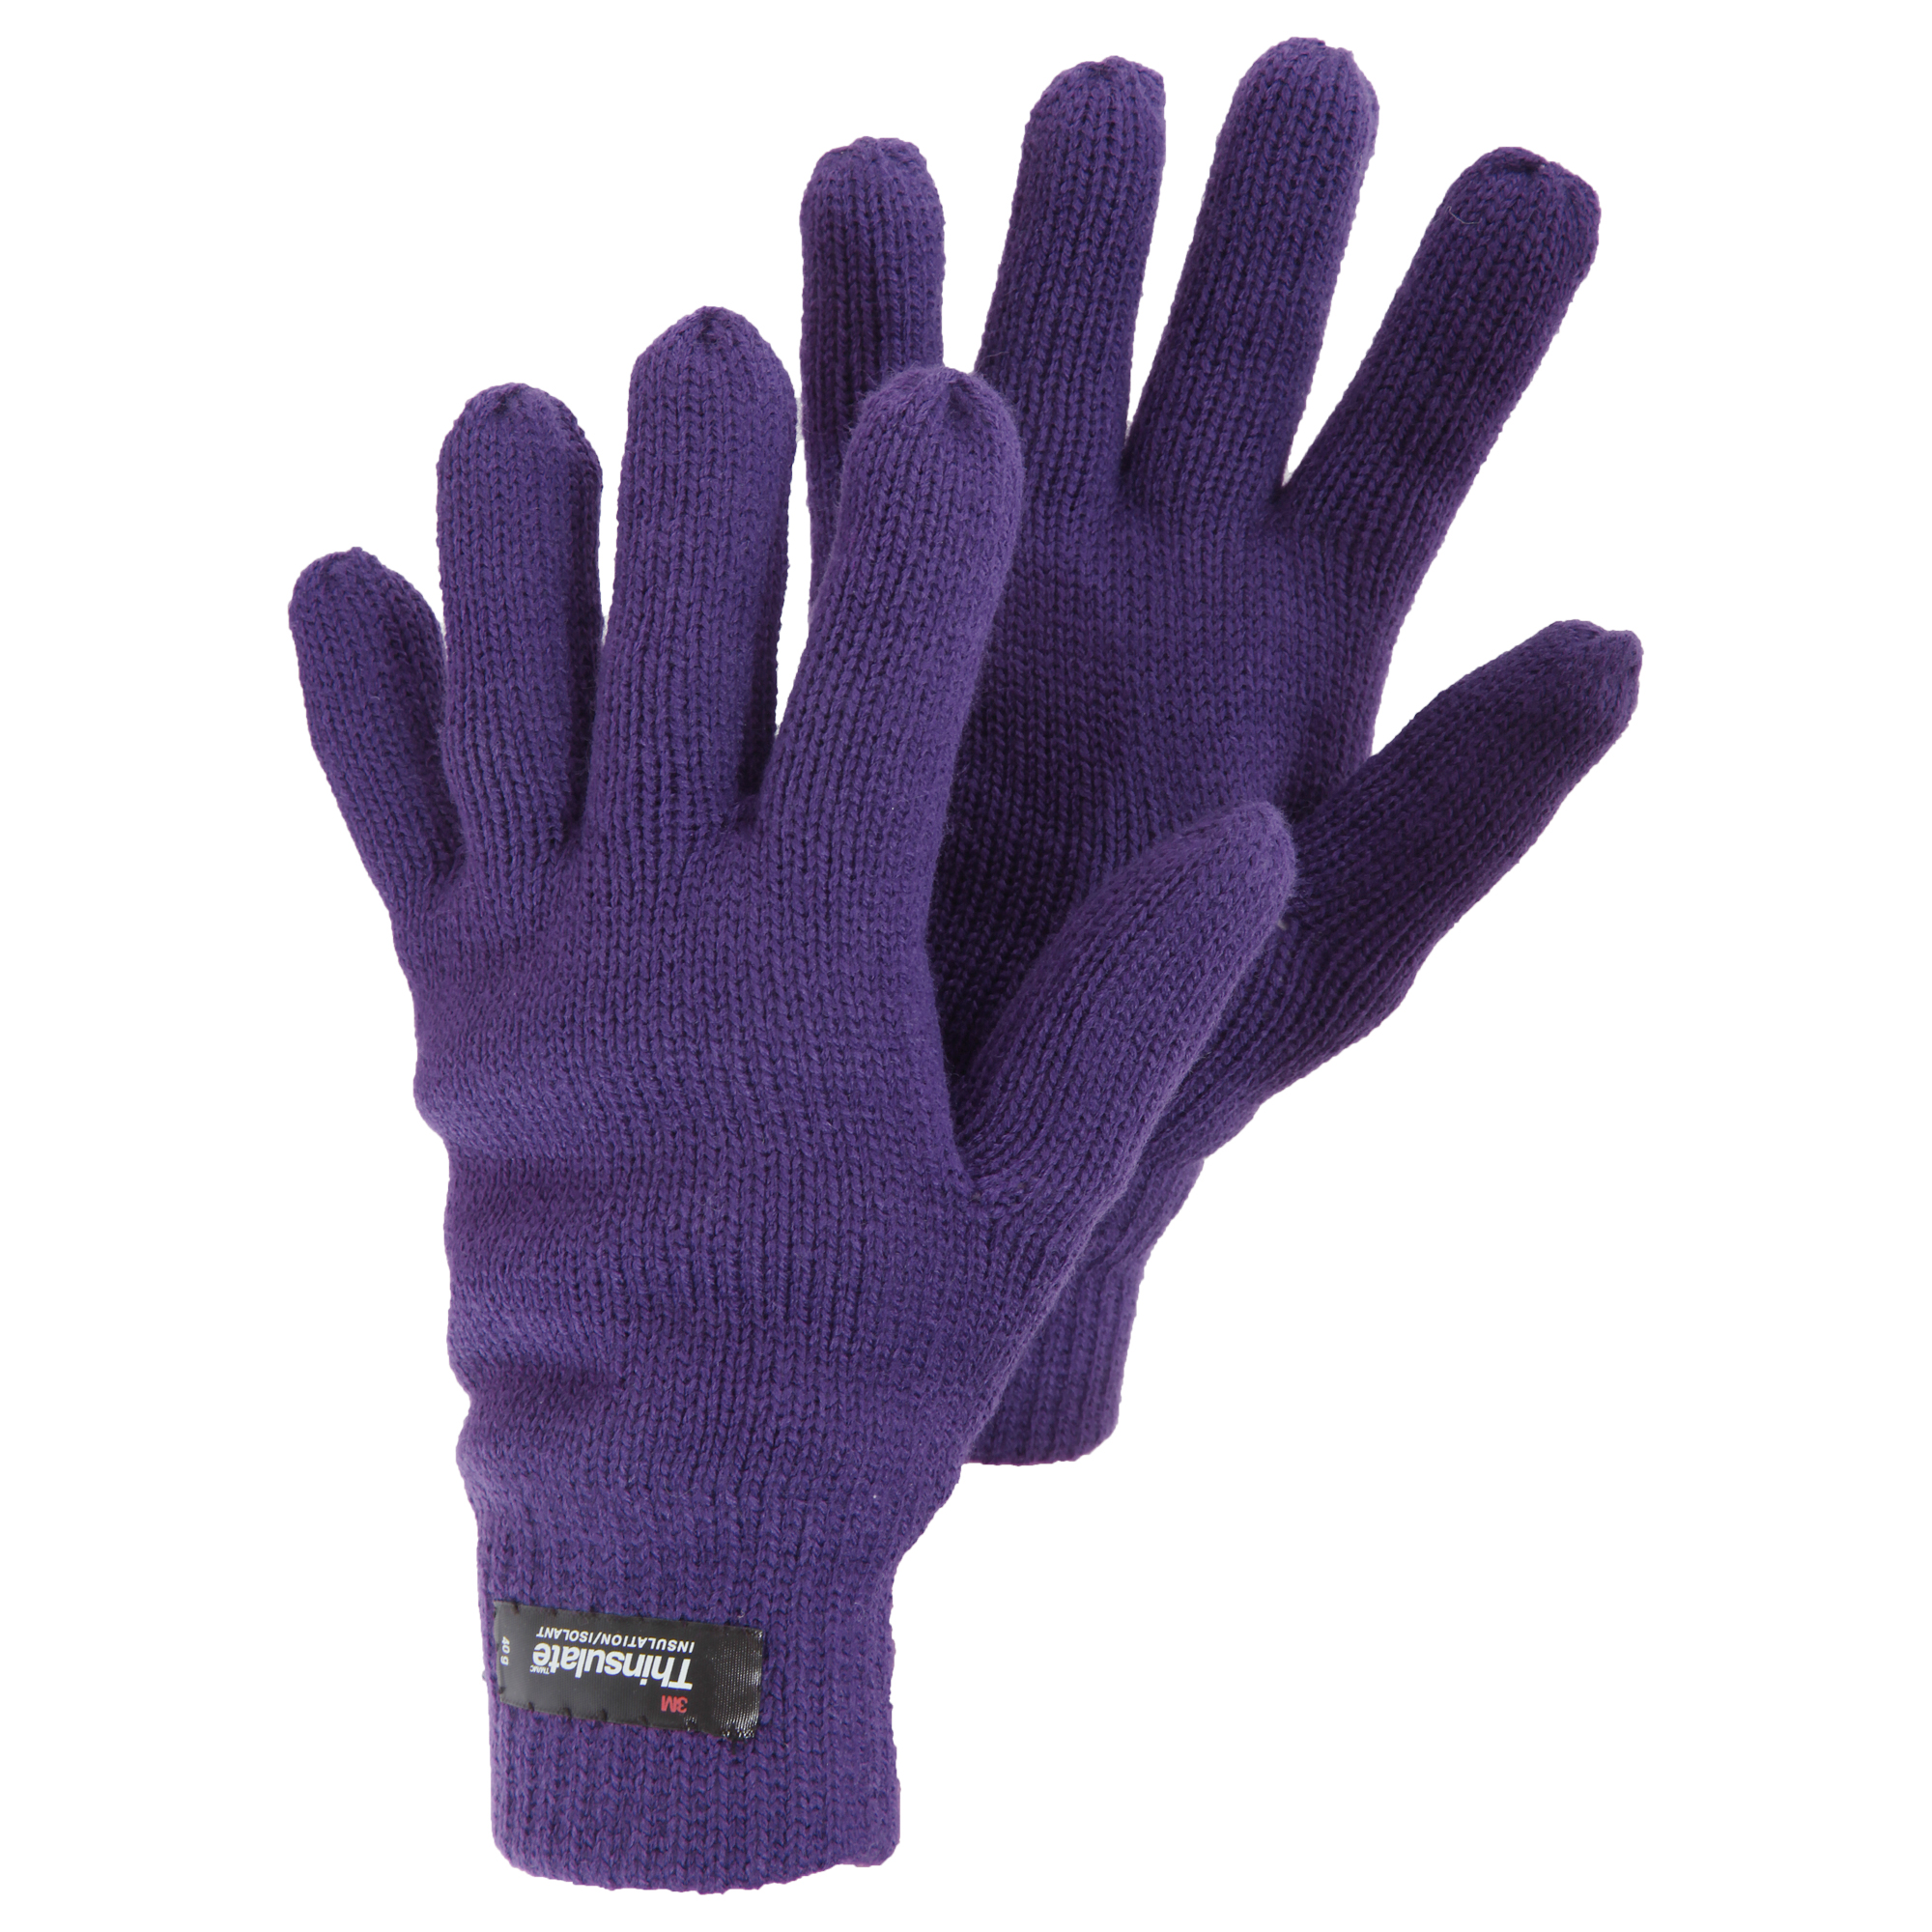 Womens/Ladies Knitted Thinsulate Thermal Winter Gloves | eBay